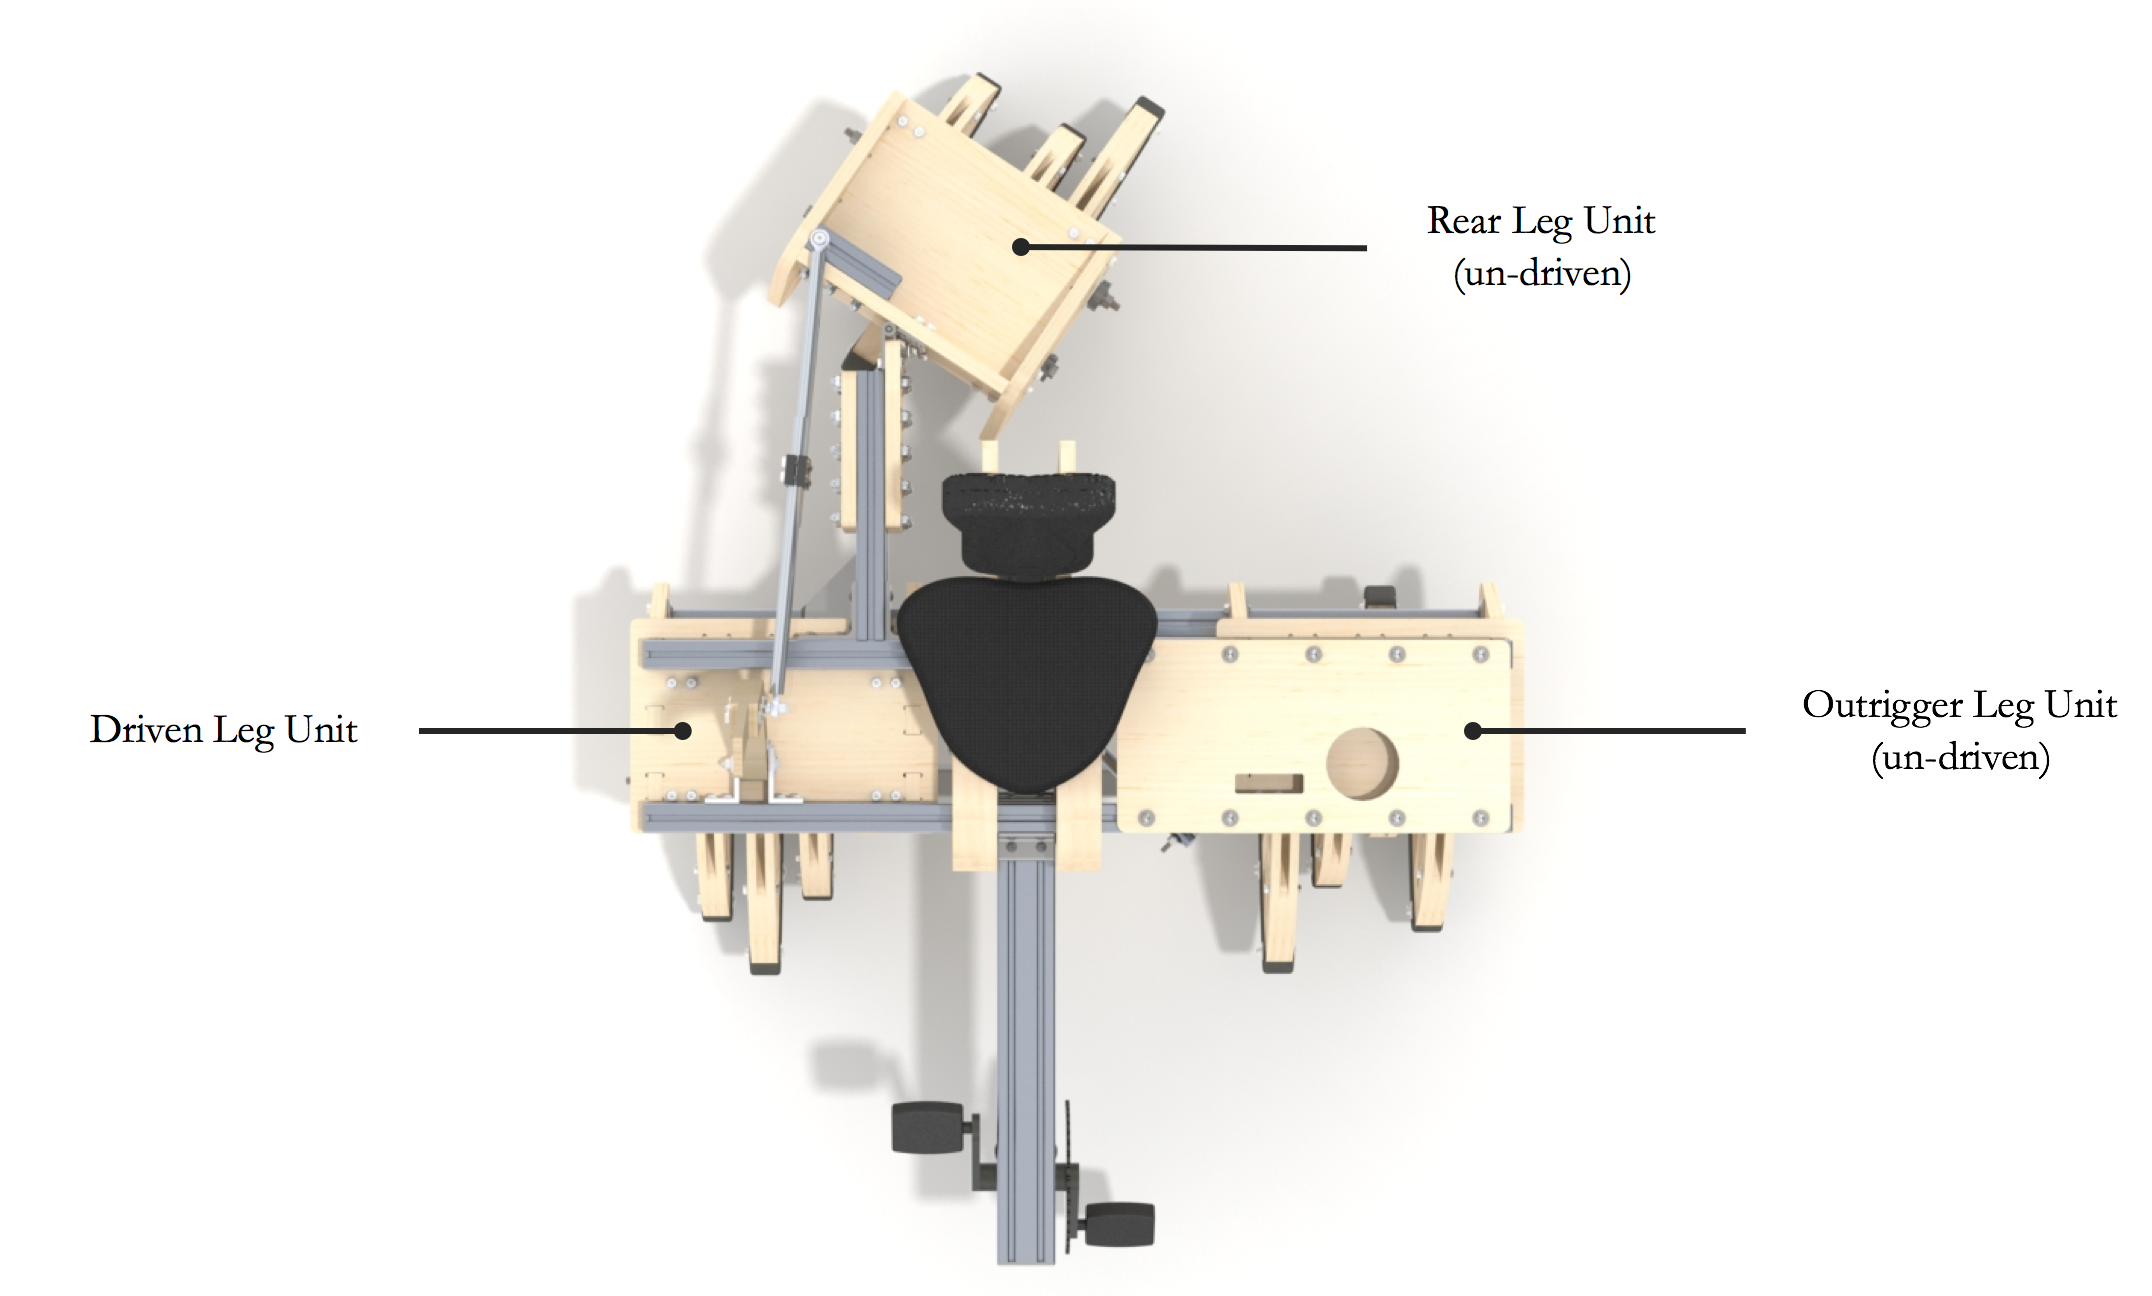 Boomerang Layout - The final layout of our machine featured 3 leg boxes arranged in an asymmetrical, reverse tricycle orientation. This configuration enabled the machine to turn without the use of a differential, placed the drivers weight over the driven leg box, and maximized the left turning capabilities for competition performance.